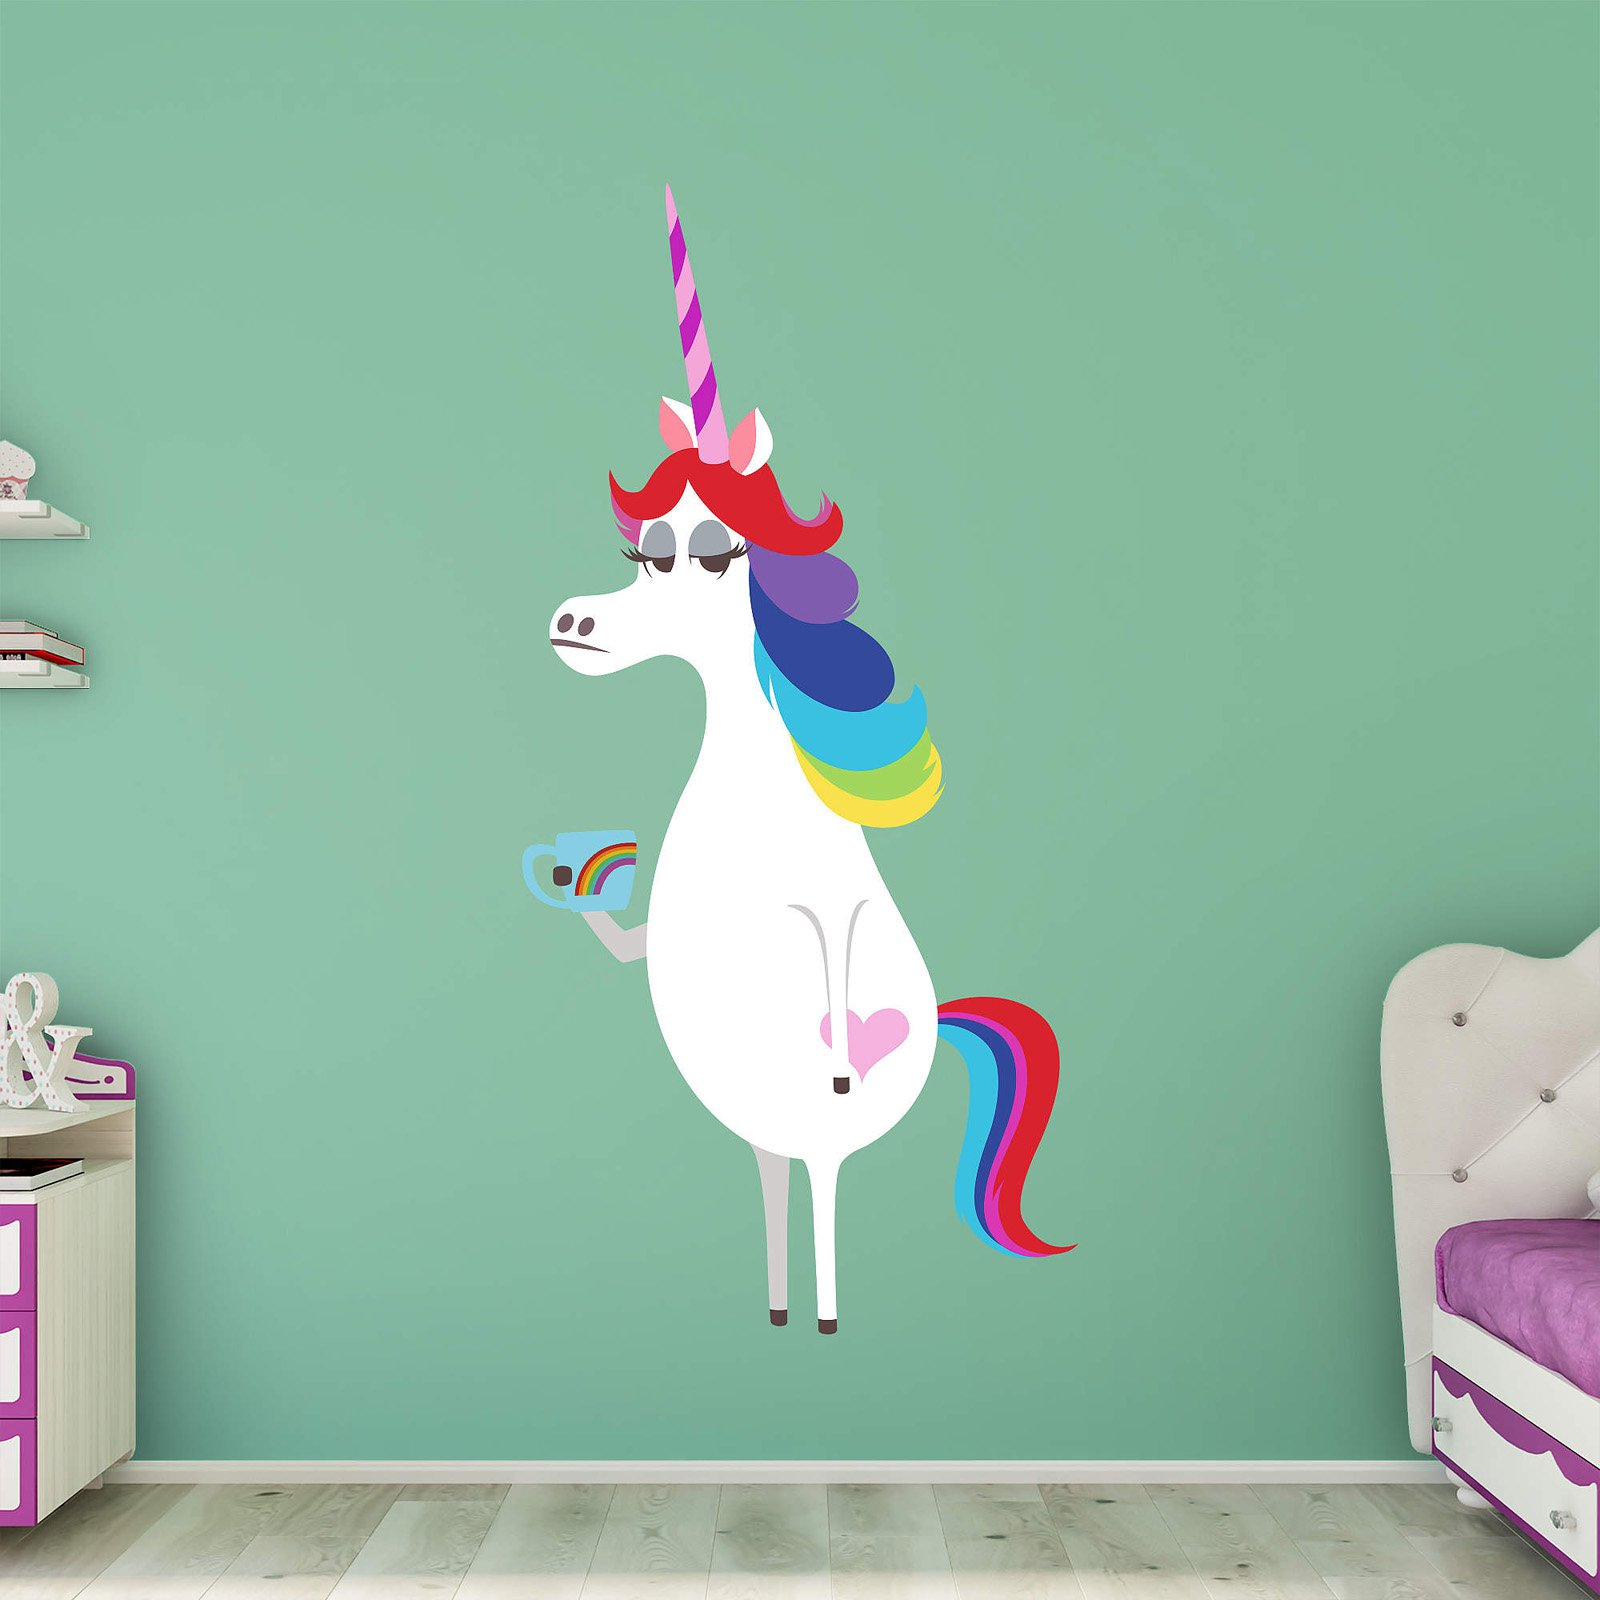 Fathead Inside Out Rainbow Unicorn Wall Decal   Walmart.com